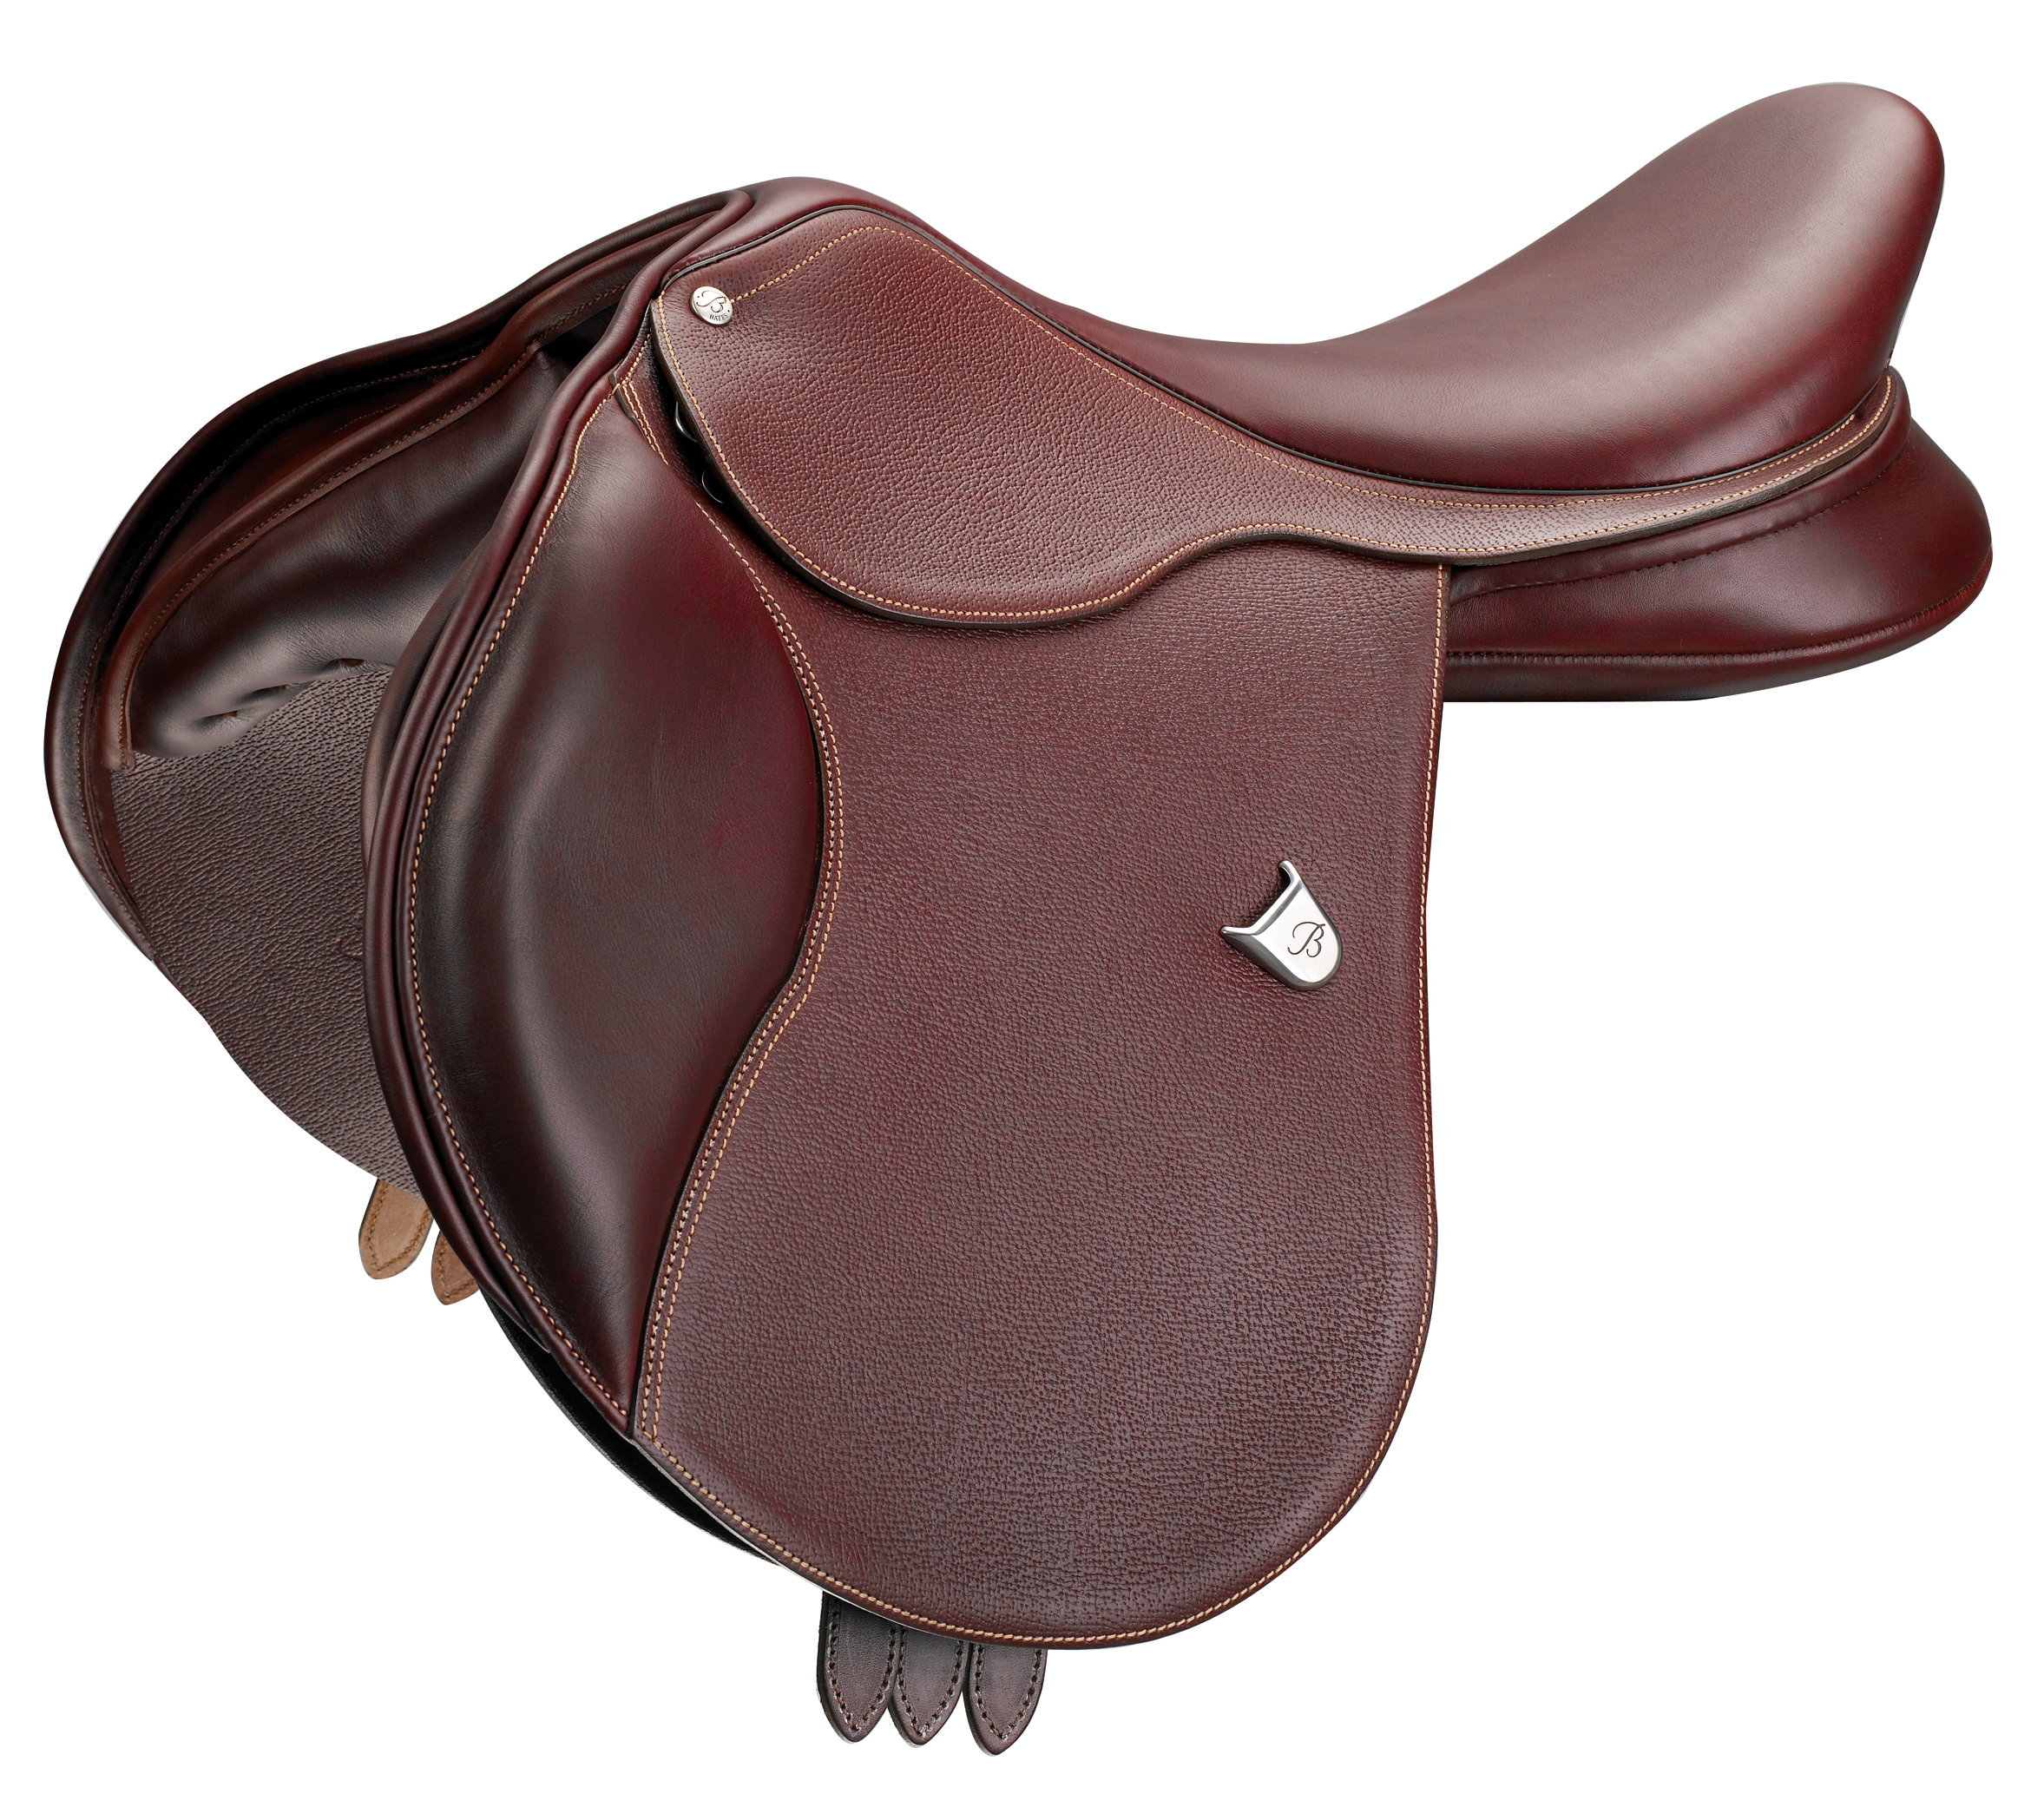 Bates Next Generation Elevation Deep Seat Saddle